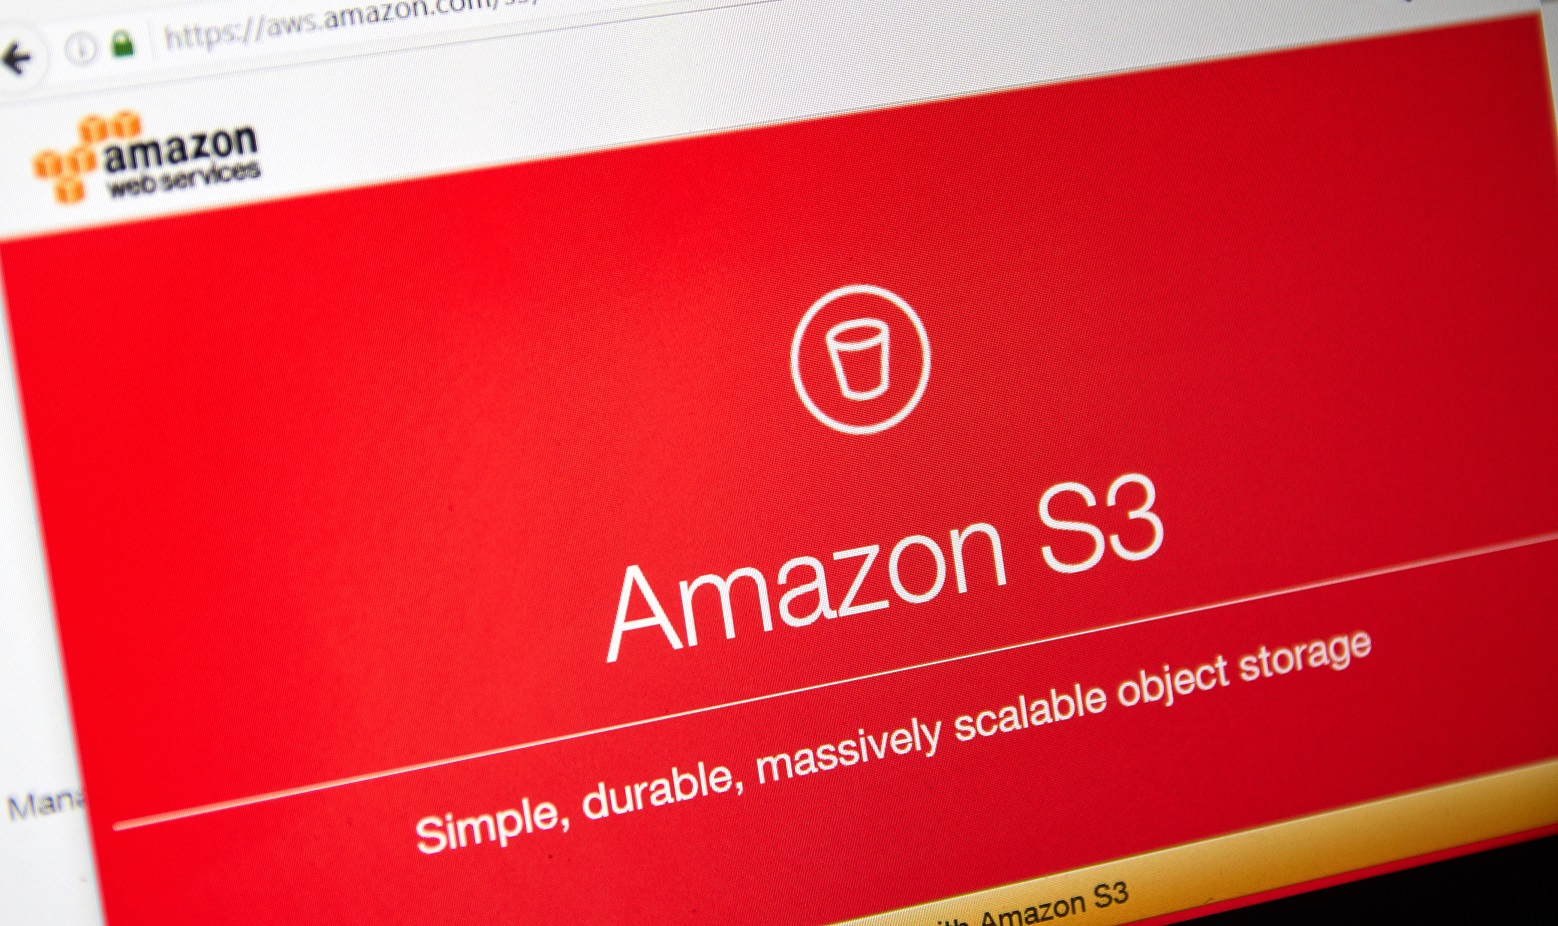 Magecart Executed Their Recent Attacks On The Amazon S3 Bucket: Why Do You Need To Worry If Your Website Uses Web-Third-Party Components?